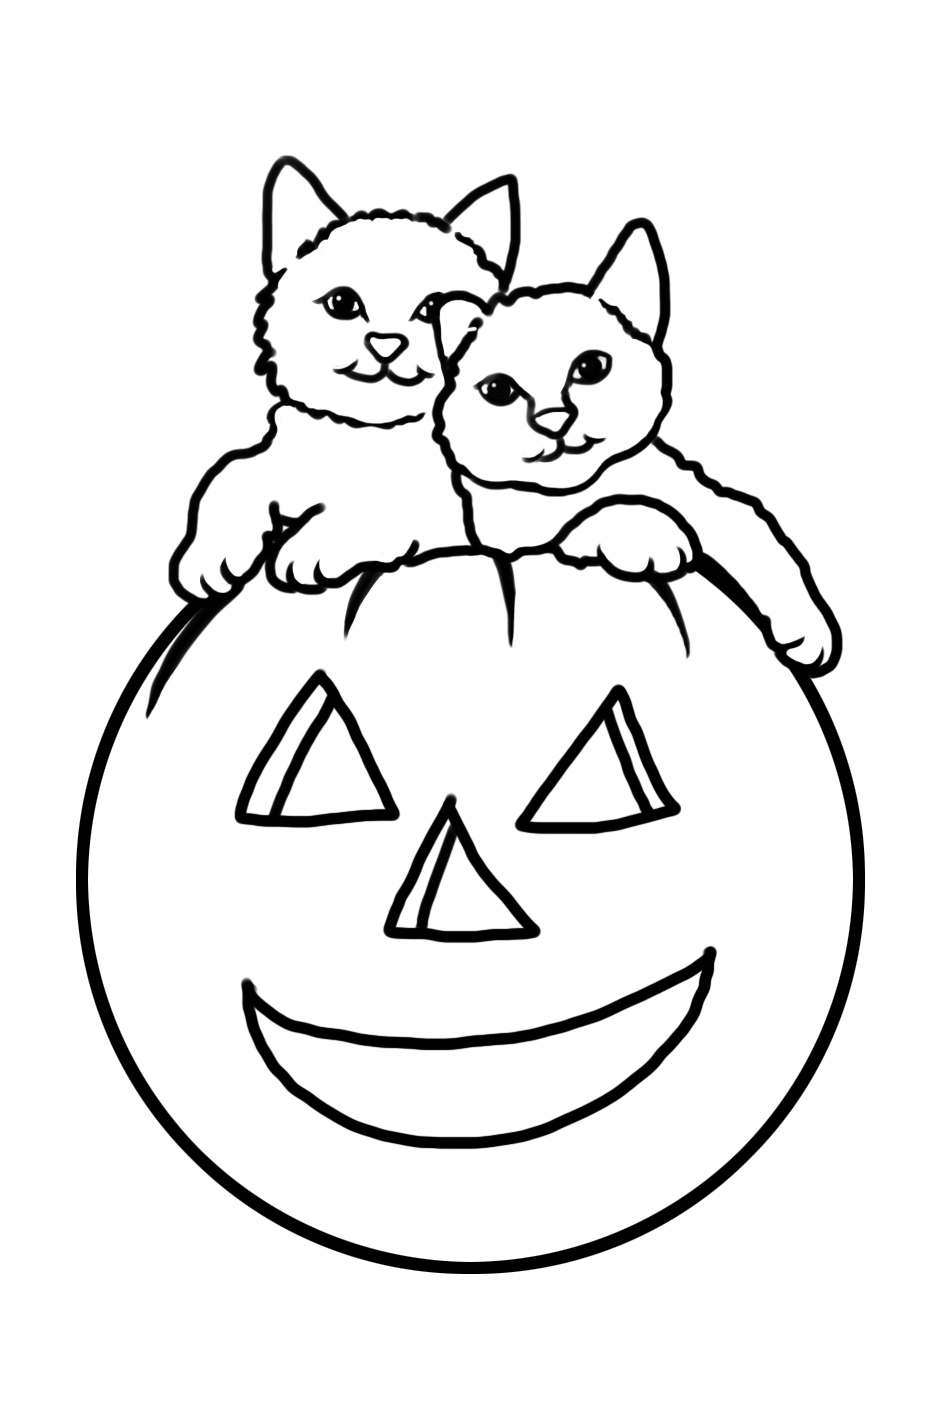 Halloween cats in pumpkin to color